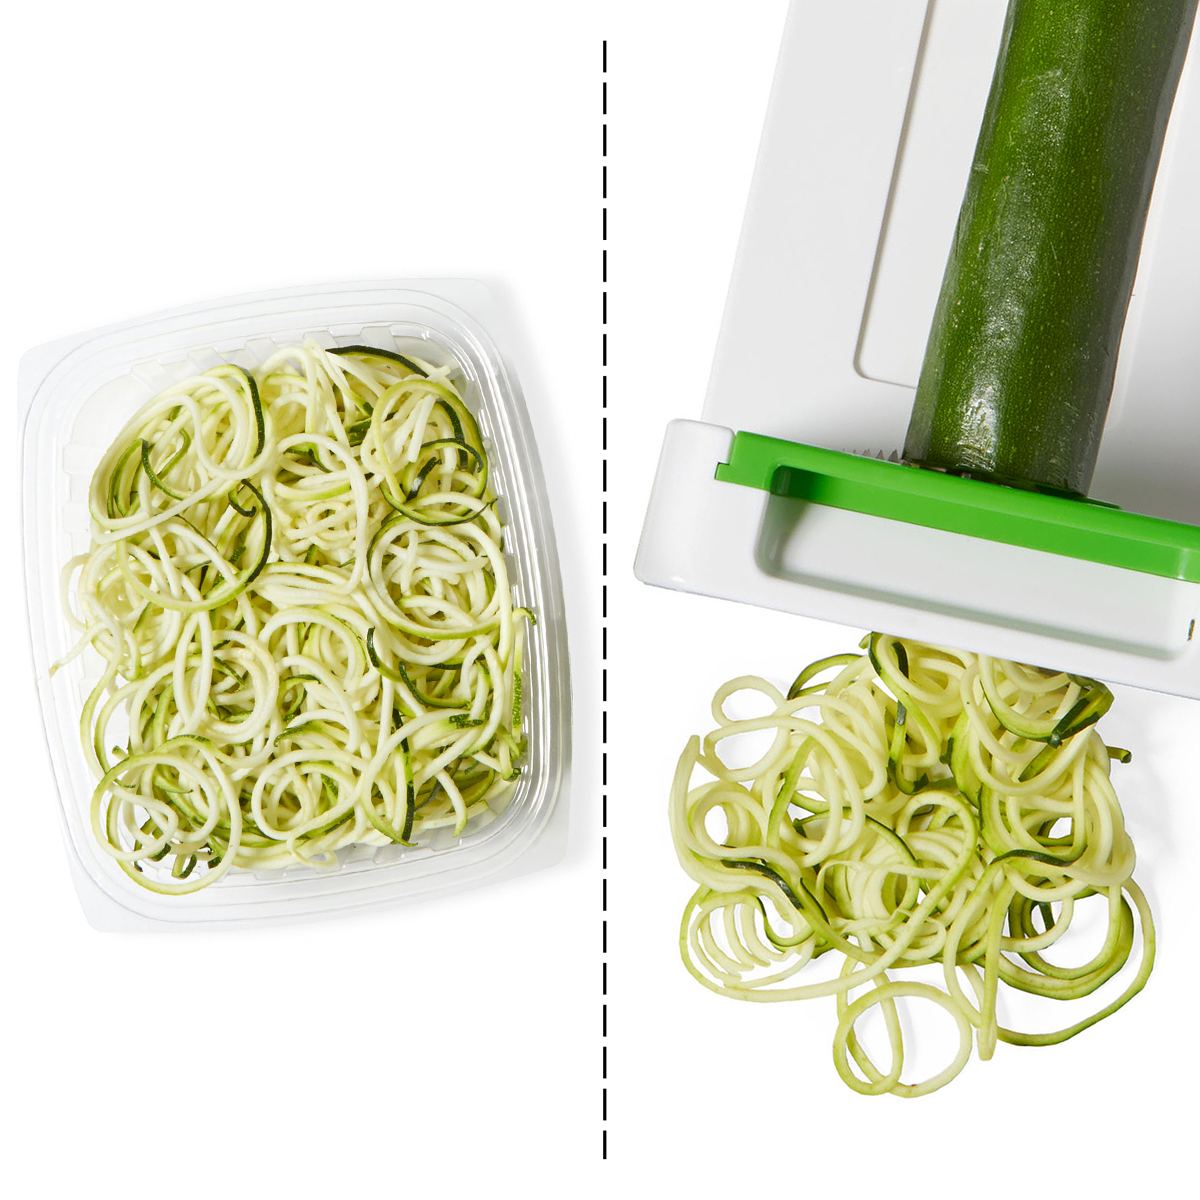 store-bought vs homemade noodles